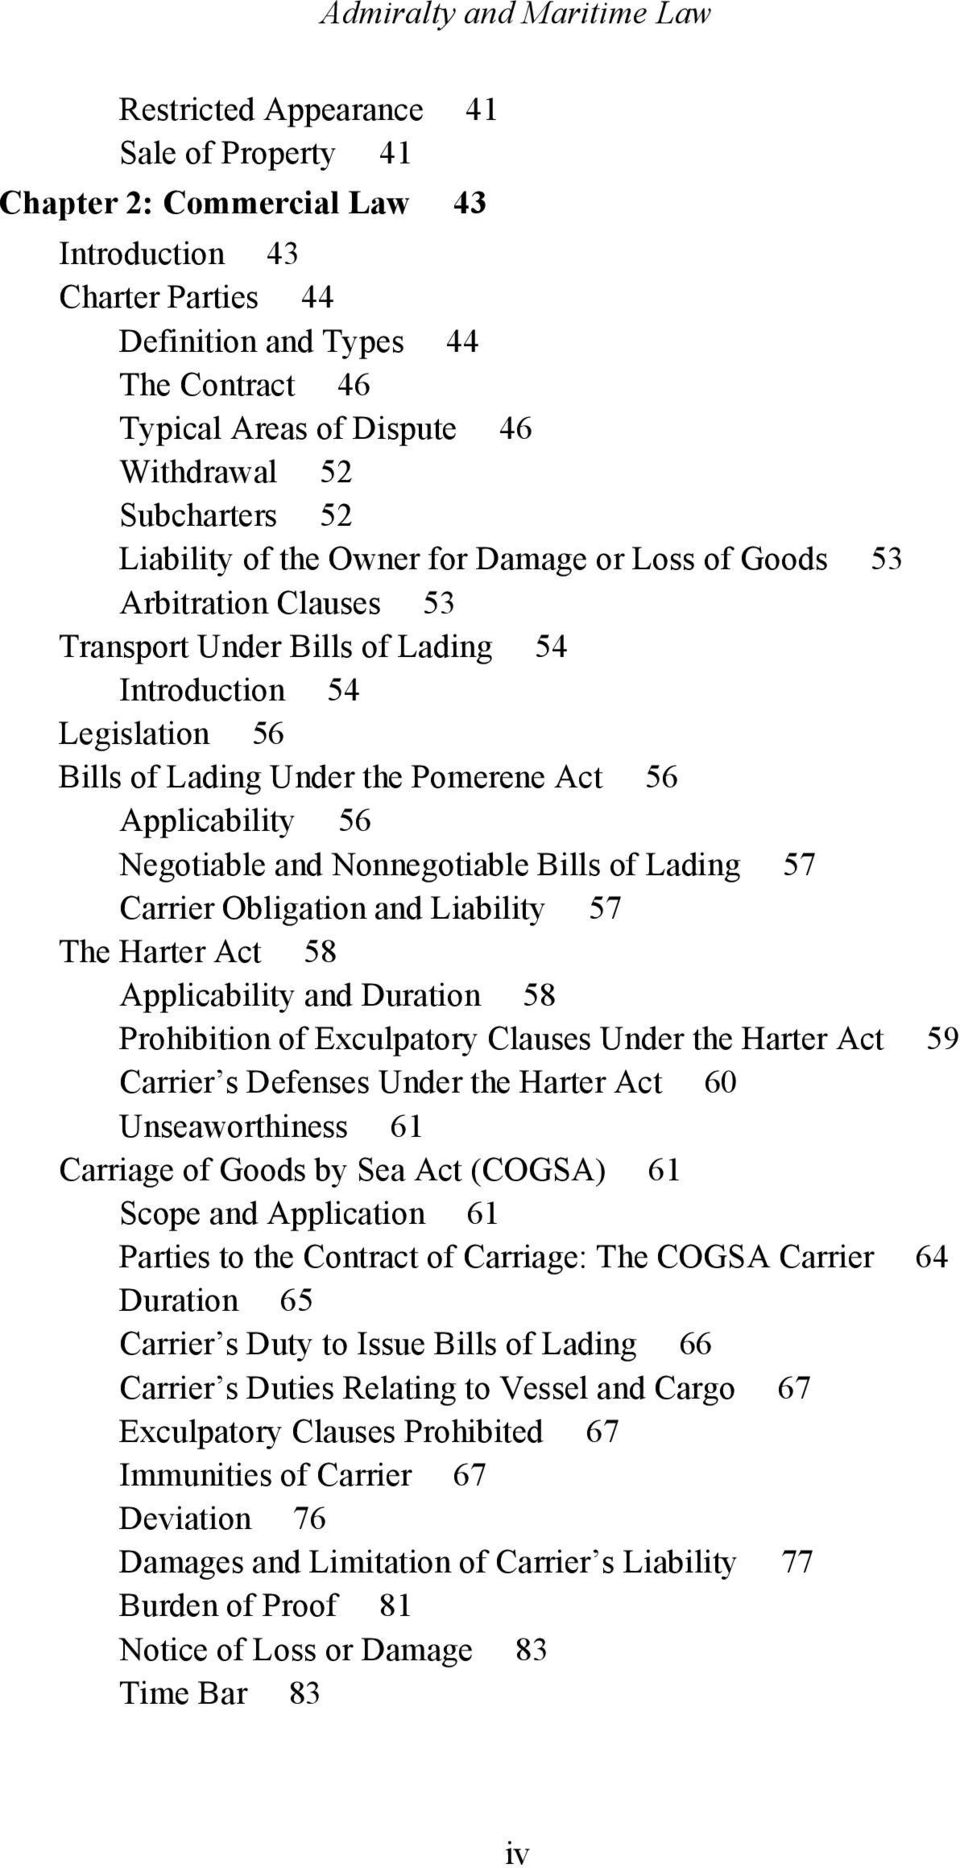 Under the Pomerene Act 56 Applicability 56 Negotiable and Nonnegotiable Bills of Lading 57 Carrier Obligation and Liability 57 The Harter Act 58 Applicability and Duration 58 Prohibition of